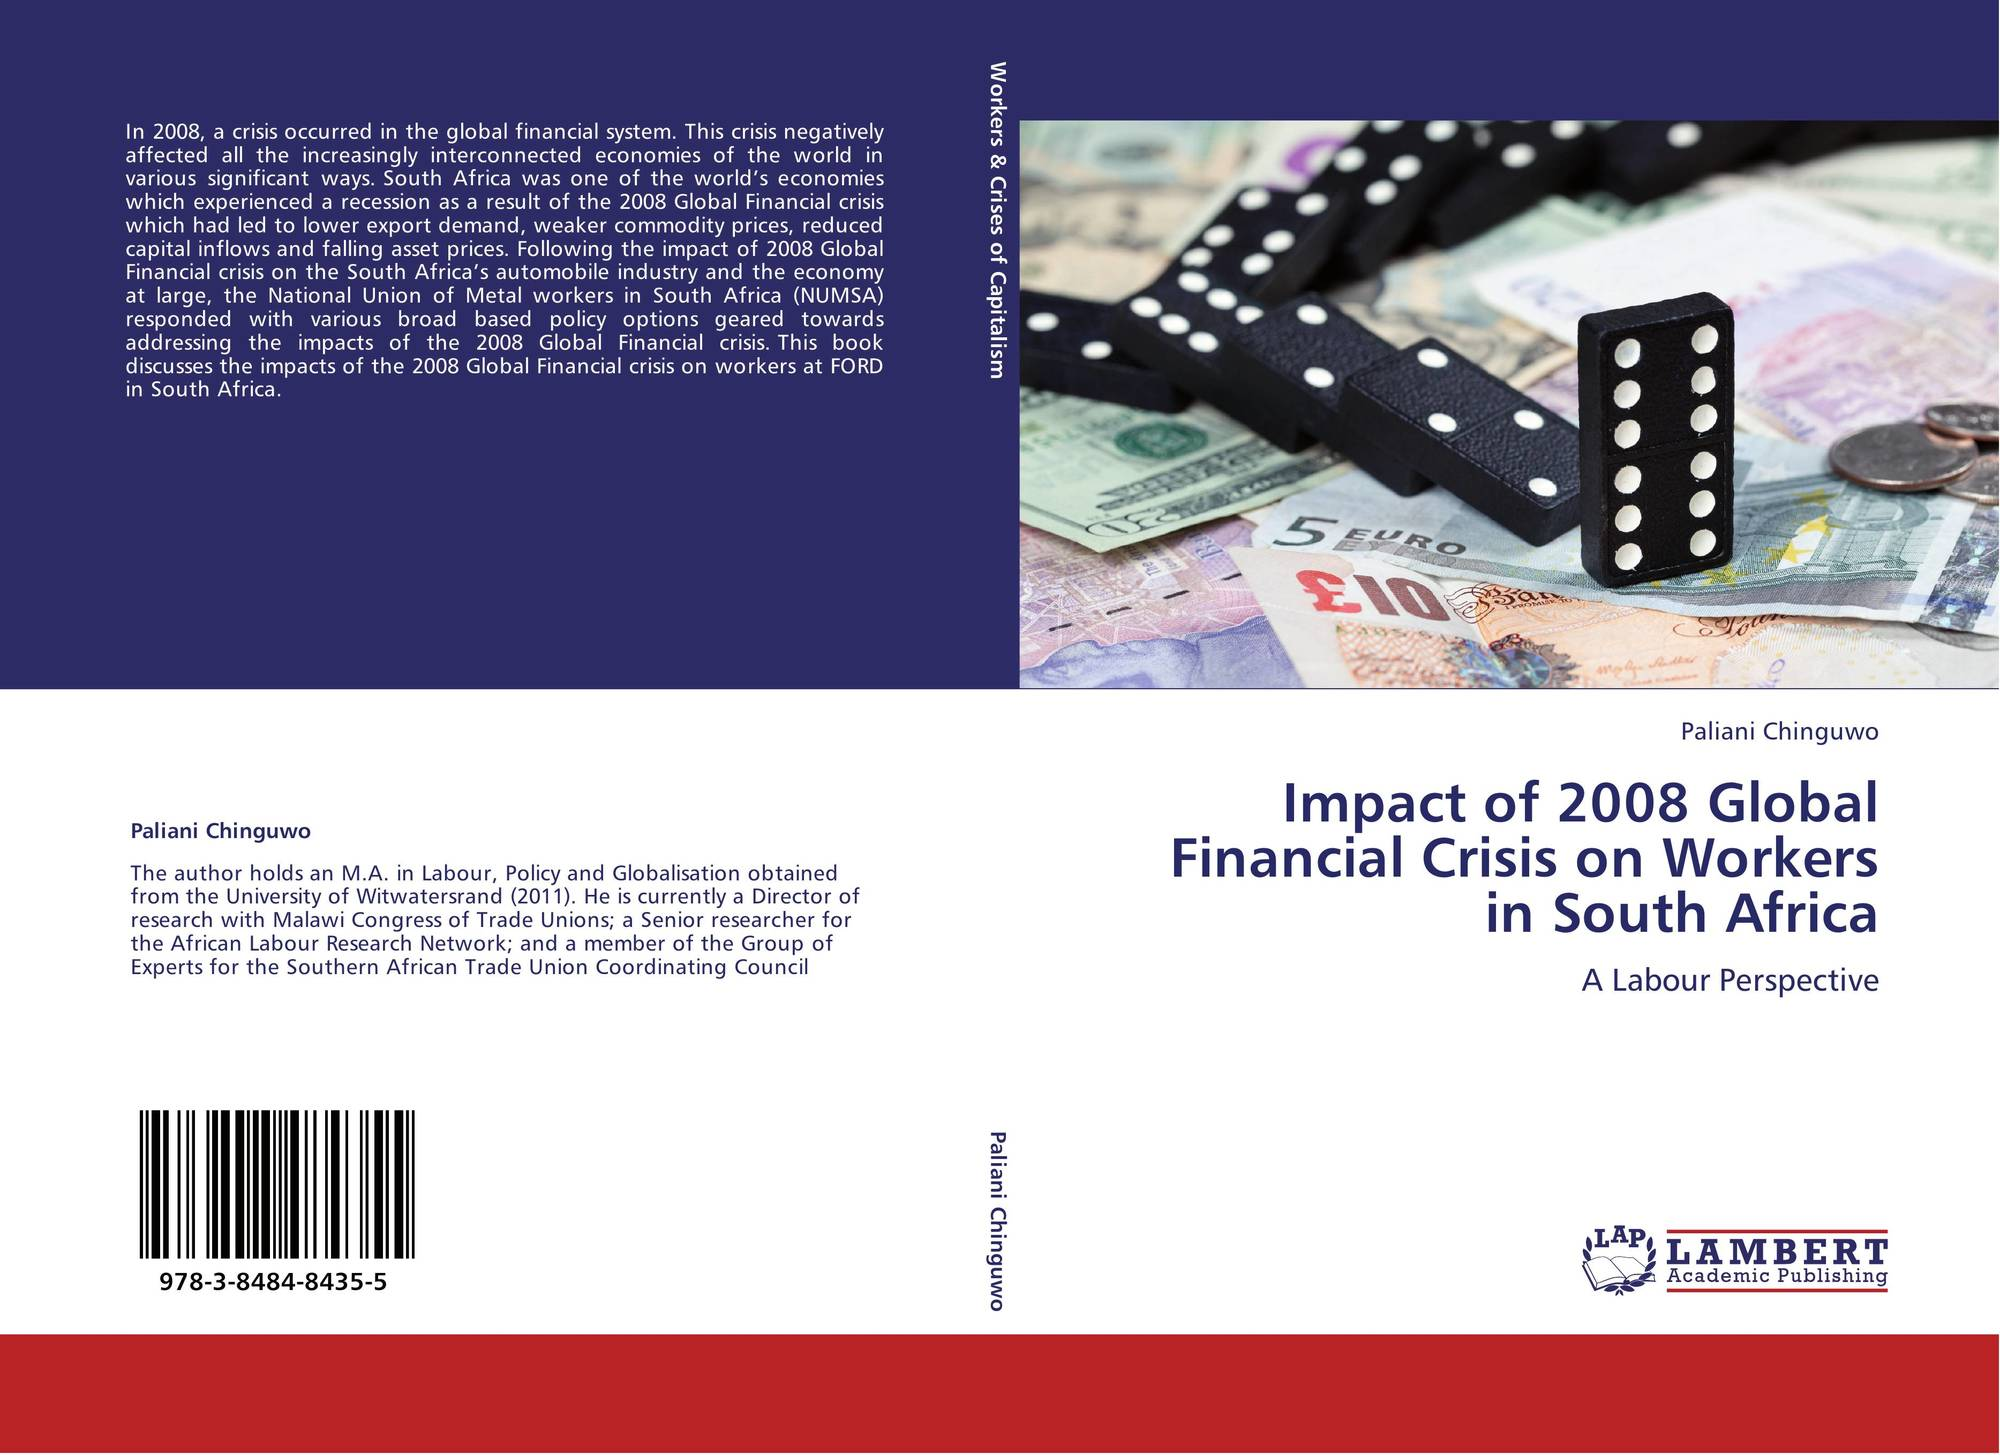 impact of global financial crisis on This is a summary from publication the global financial crisis and its impact on australia (article) which contains key figures, key points and notes from the publication.